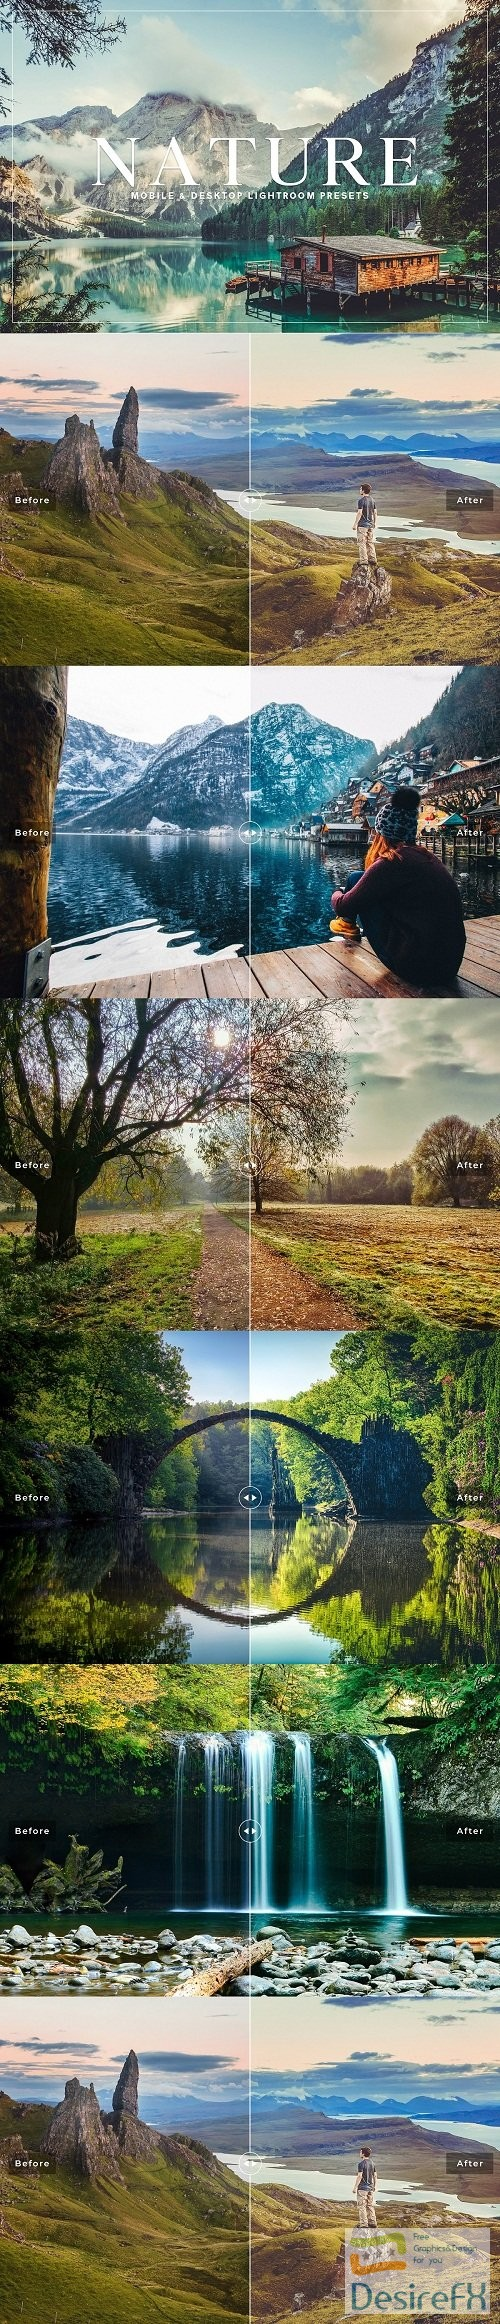 photoshop - Nature Lightroom Presets Collection - 3556568